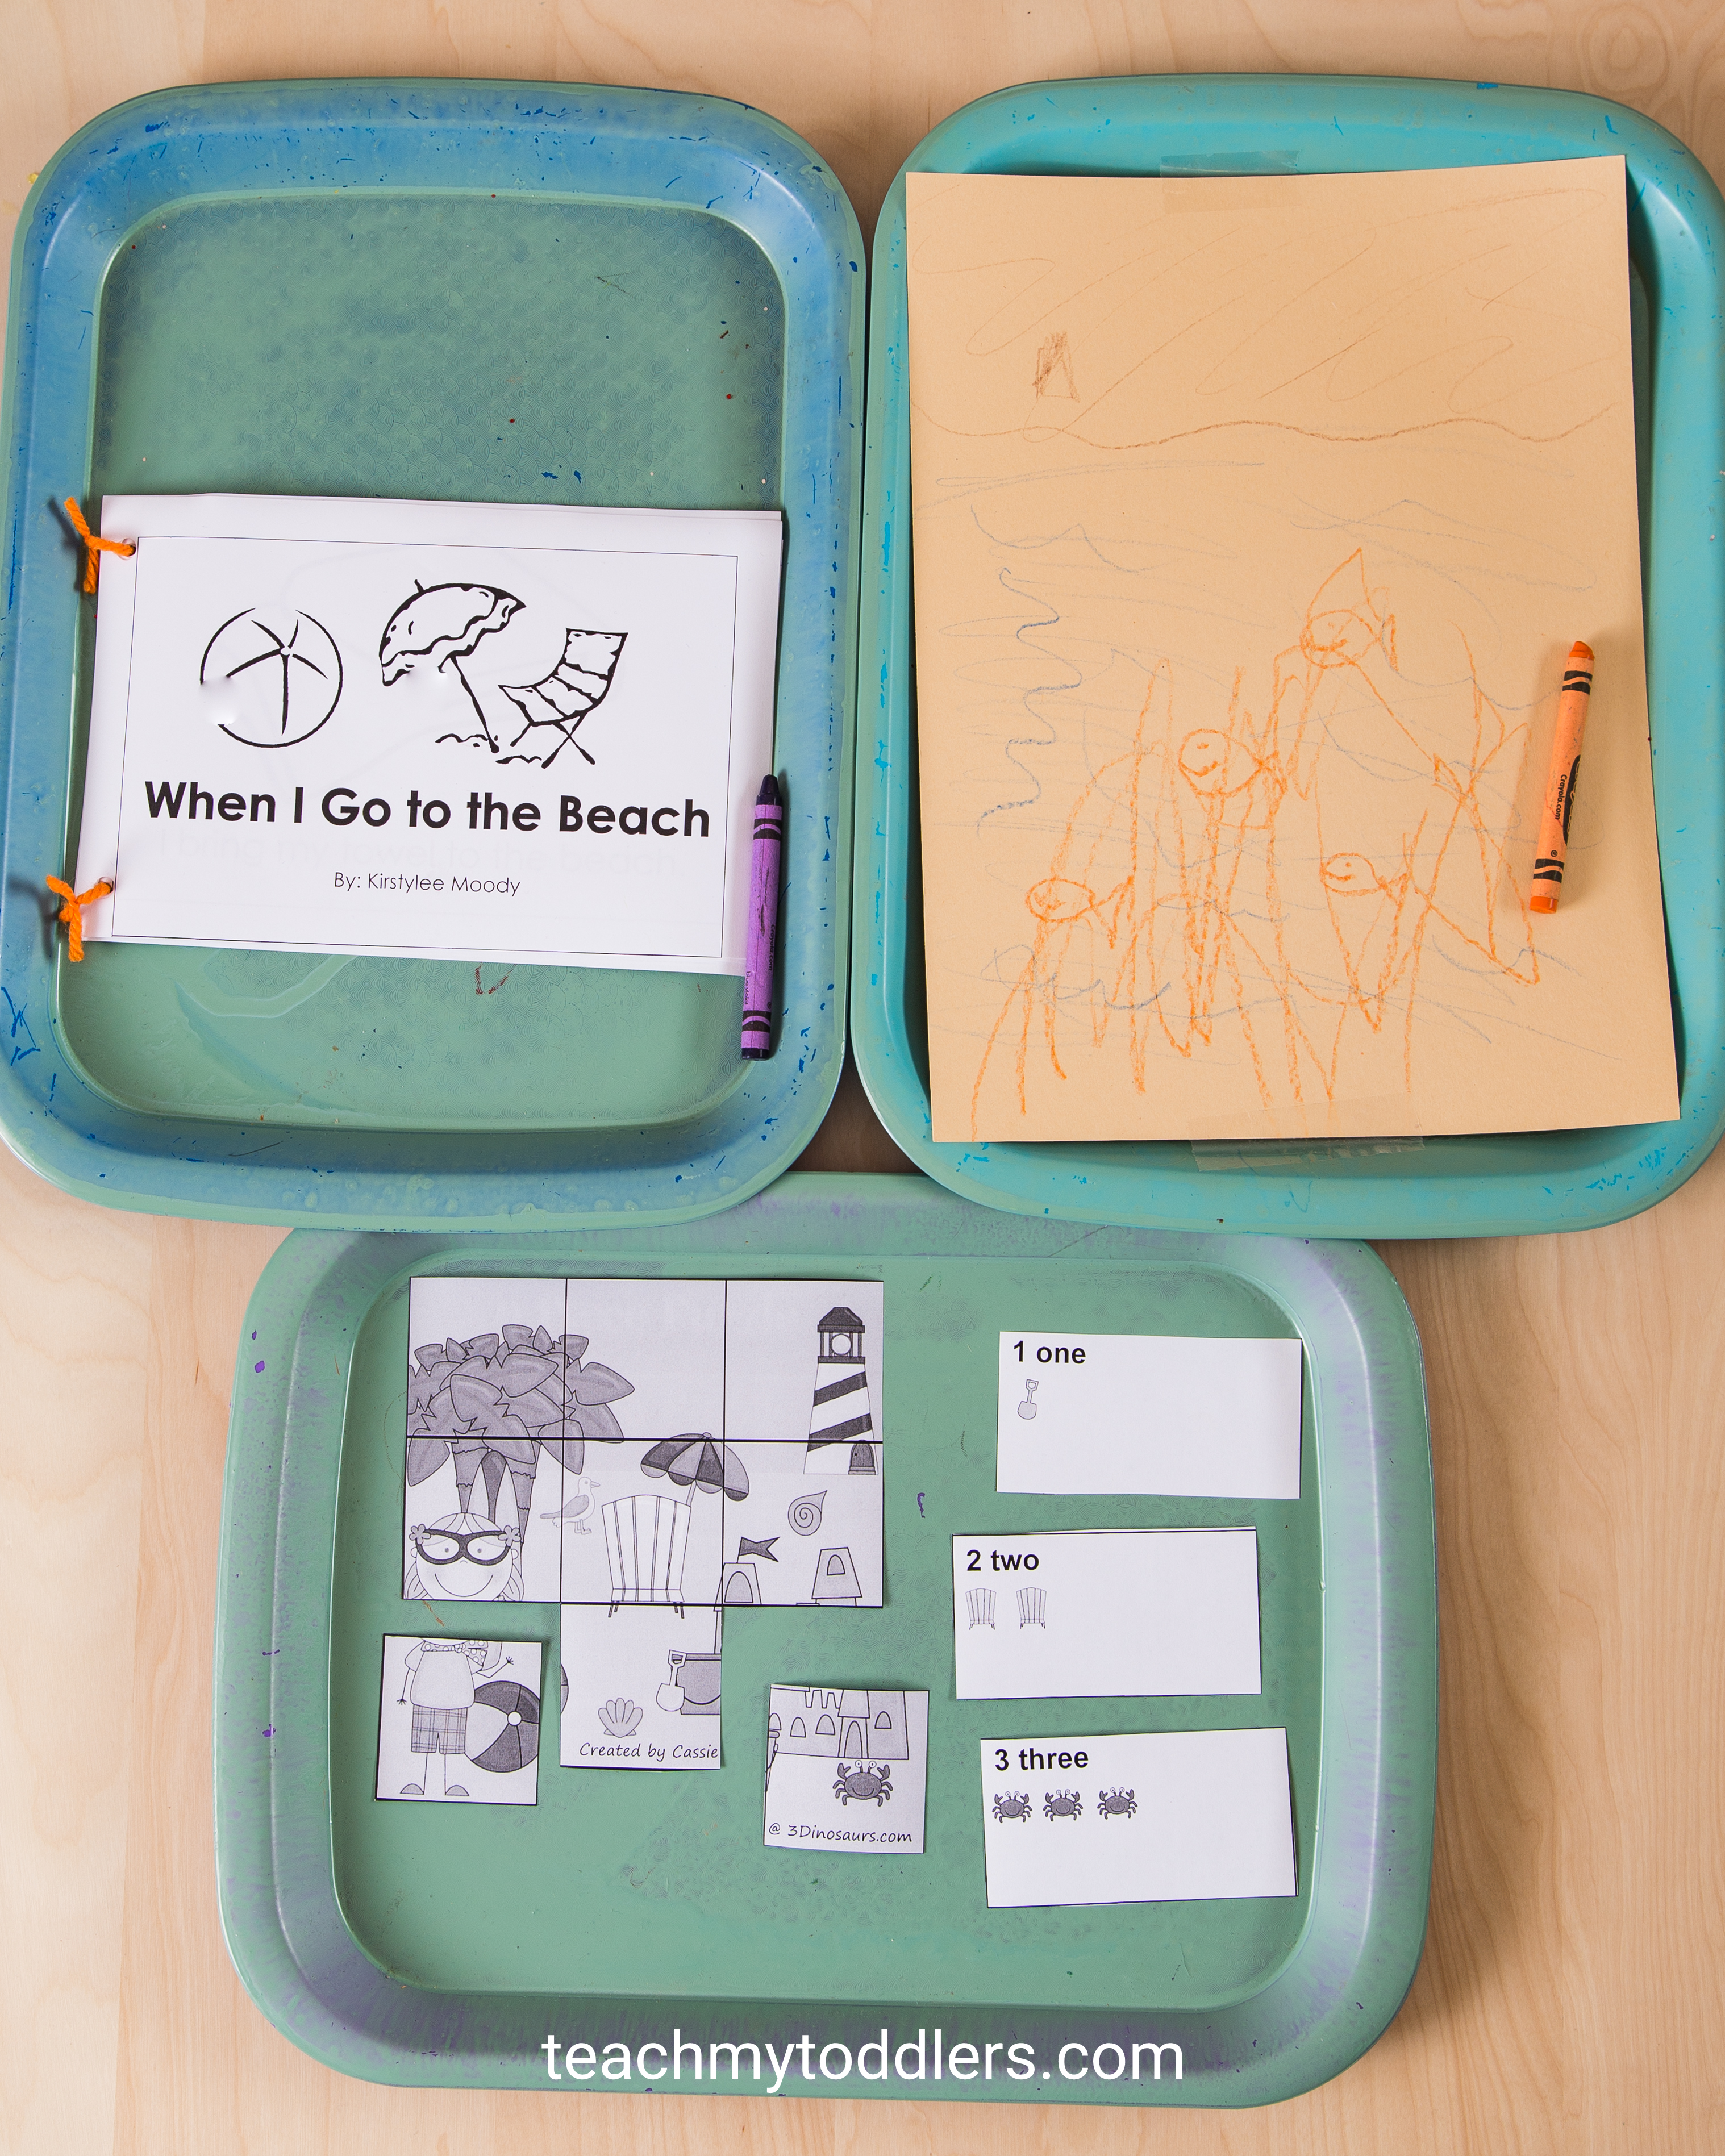 Learn how these beach activities can teach your toddlers about the beach